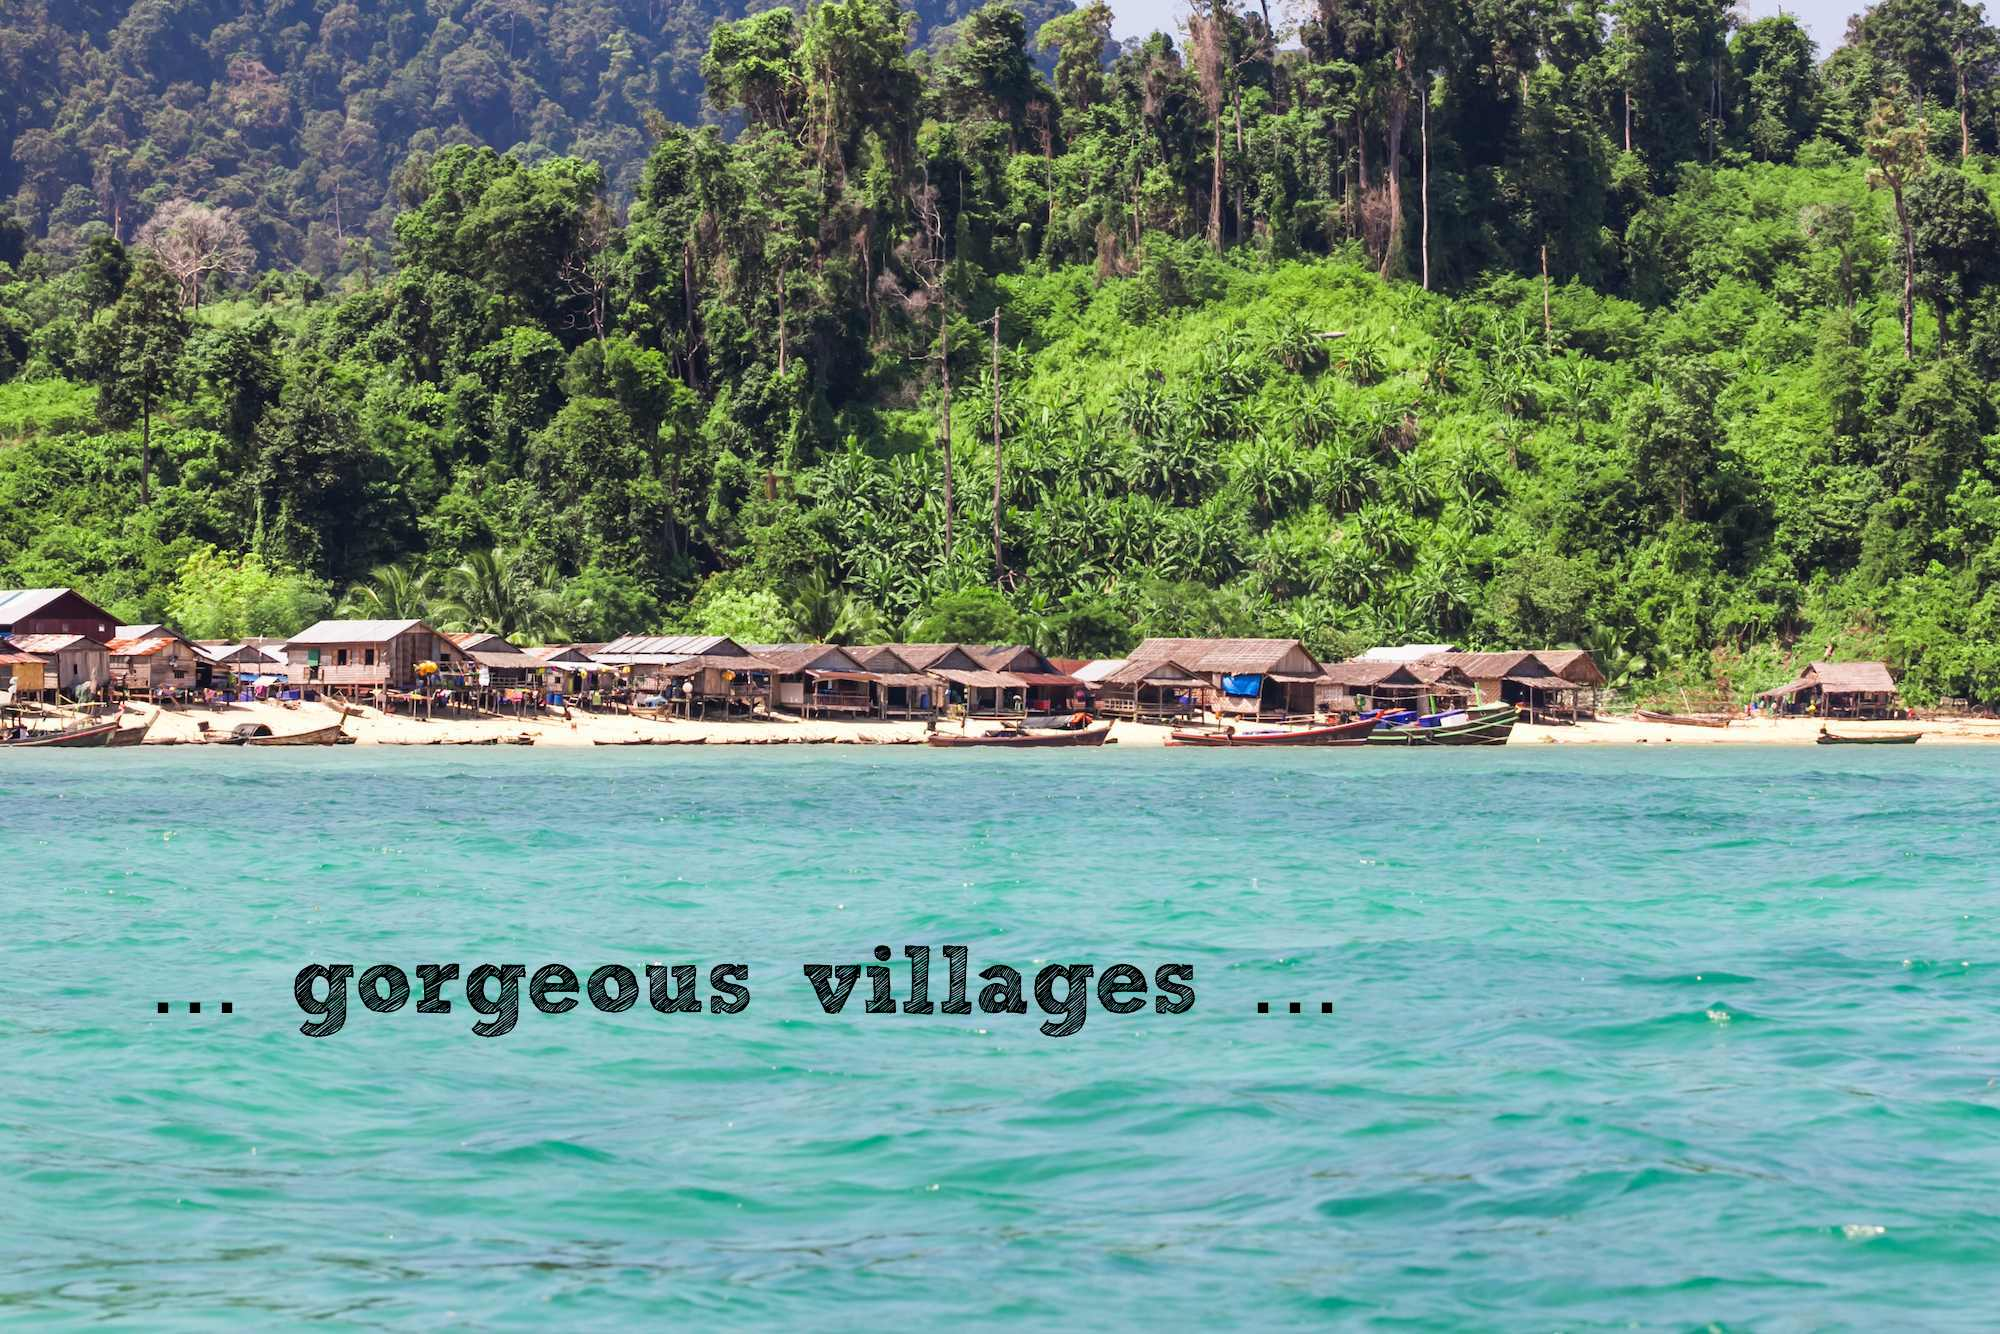 with gorgeous villages.jpg